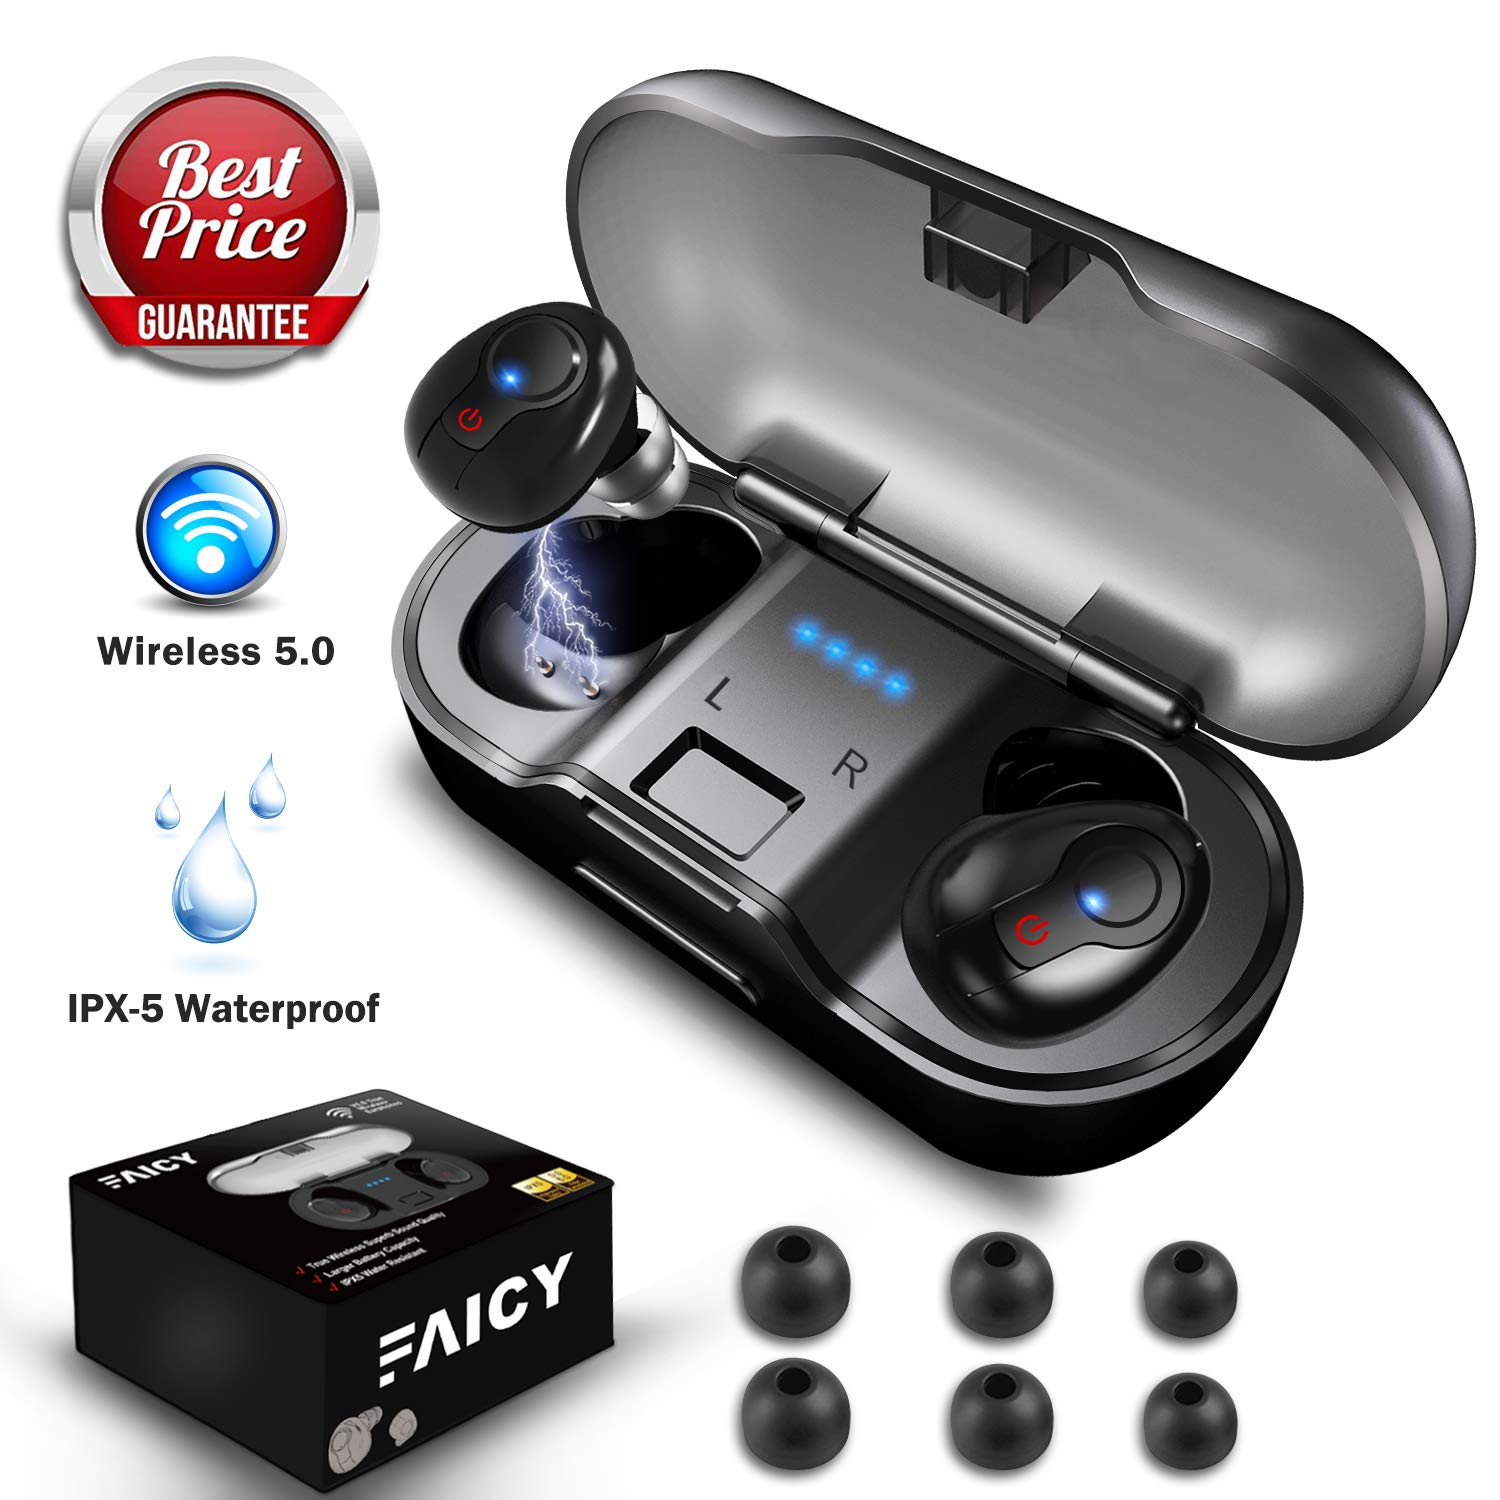 Wireless Earbuds, Faicy True Wireless 5.0 Deep Bass Mini in-Ear Headset HD Stereo IPX5 Headphones with Built-in Mic, 24Hr Play Time with 480mAH Battery Charging Case